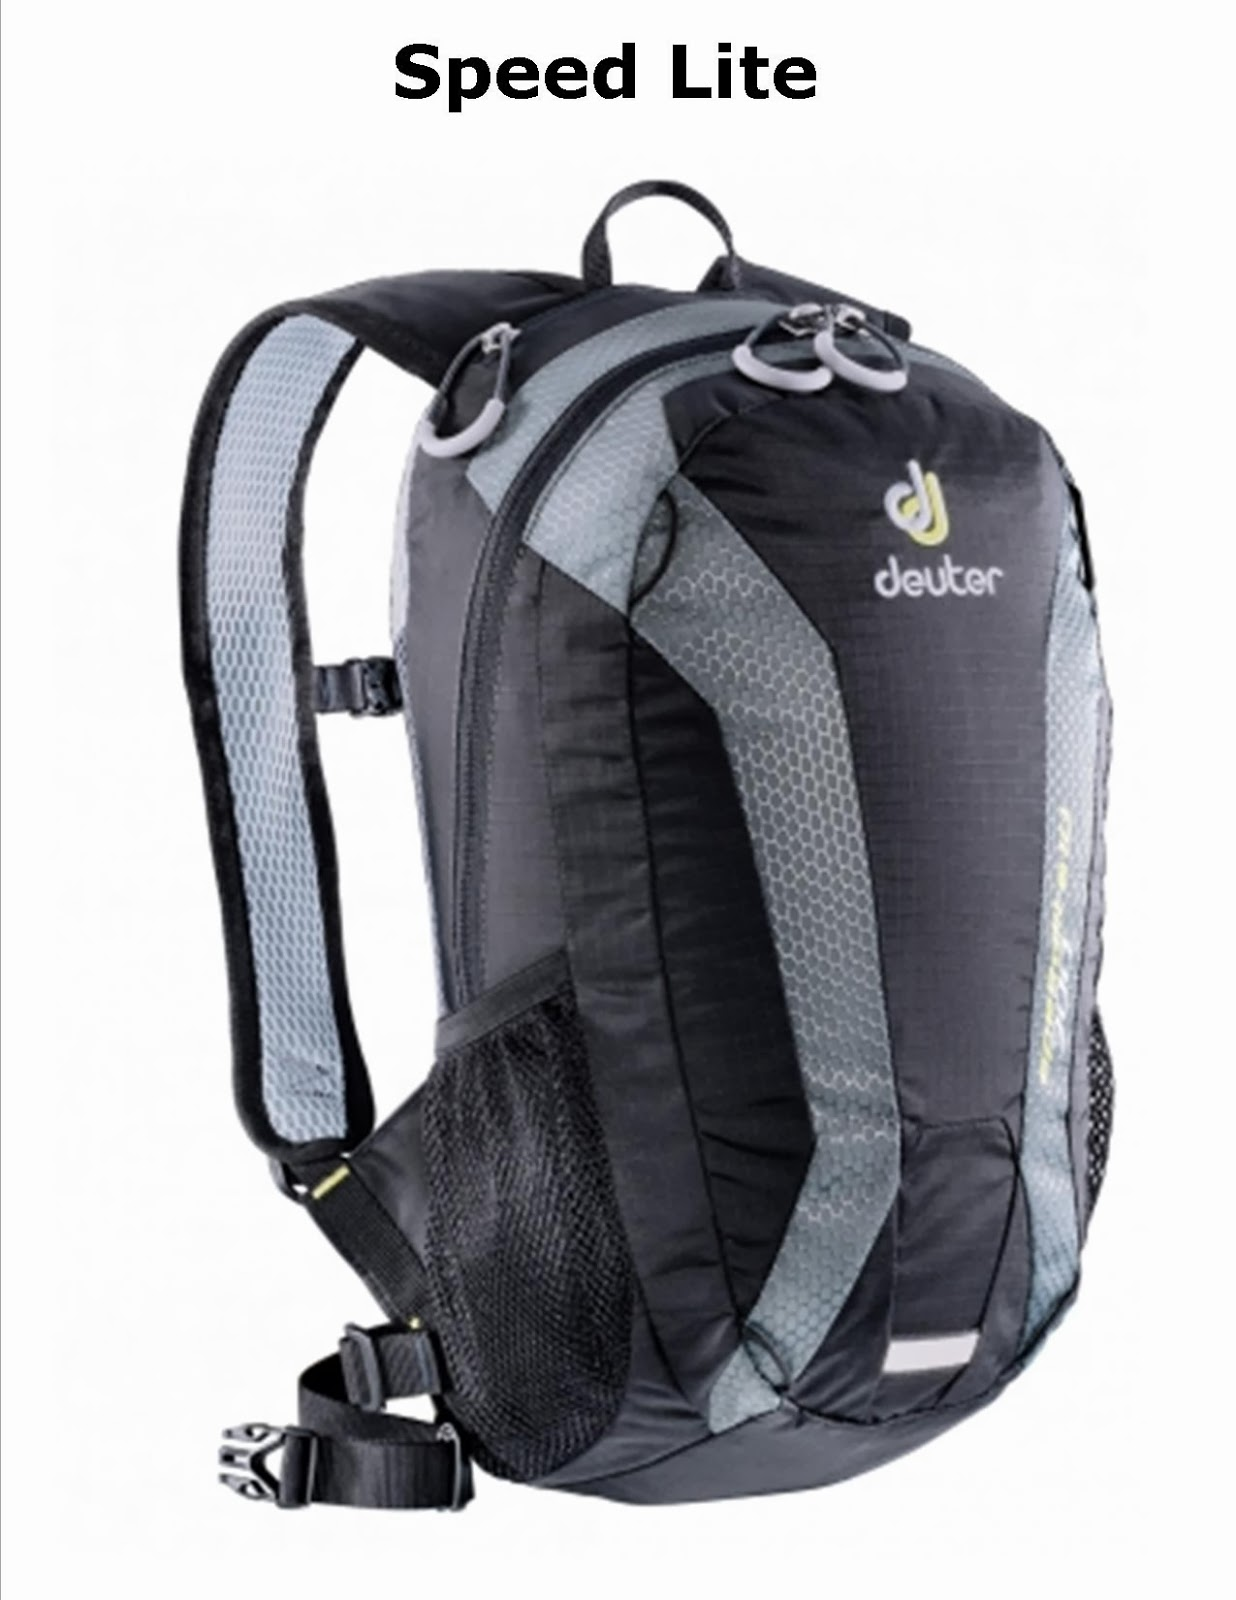 http://deuterforsale.blogspot.com/2008/12/deuter-speed-lite-speed-lite-10l-black.html